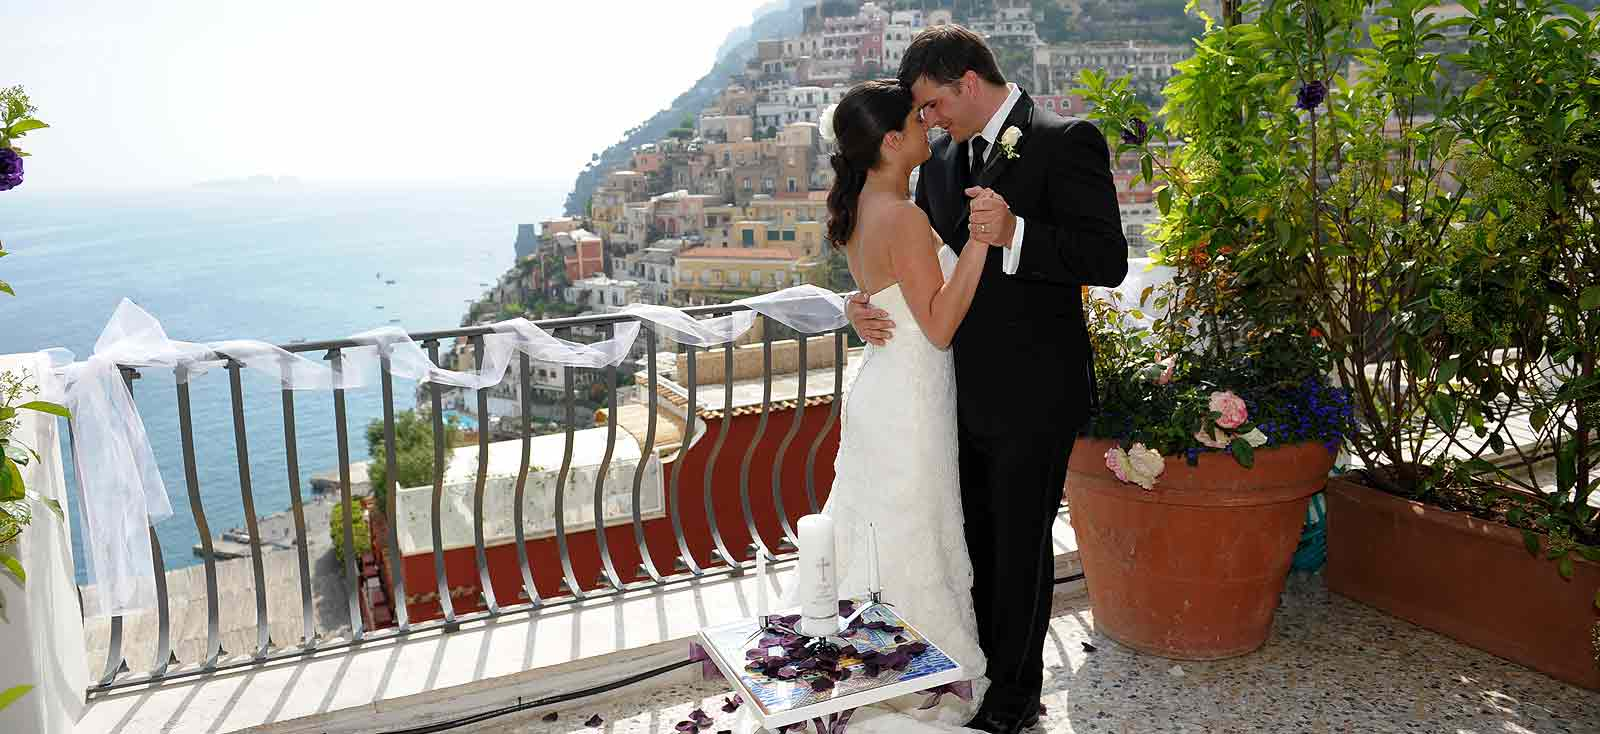 Where To Get Married In Italy: Wedding In Positano: Villa, Beach And Church Weddings In